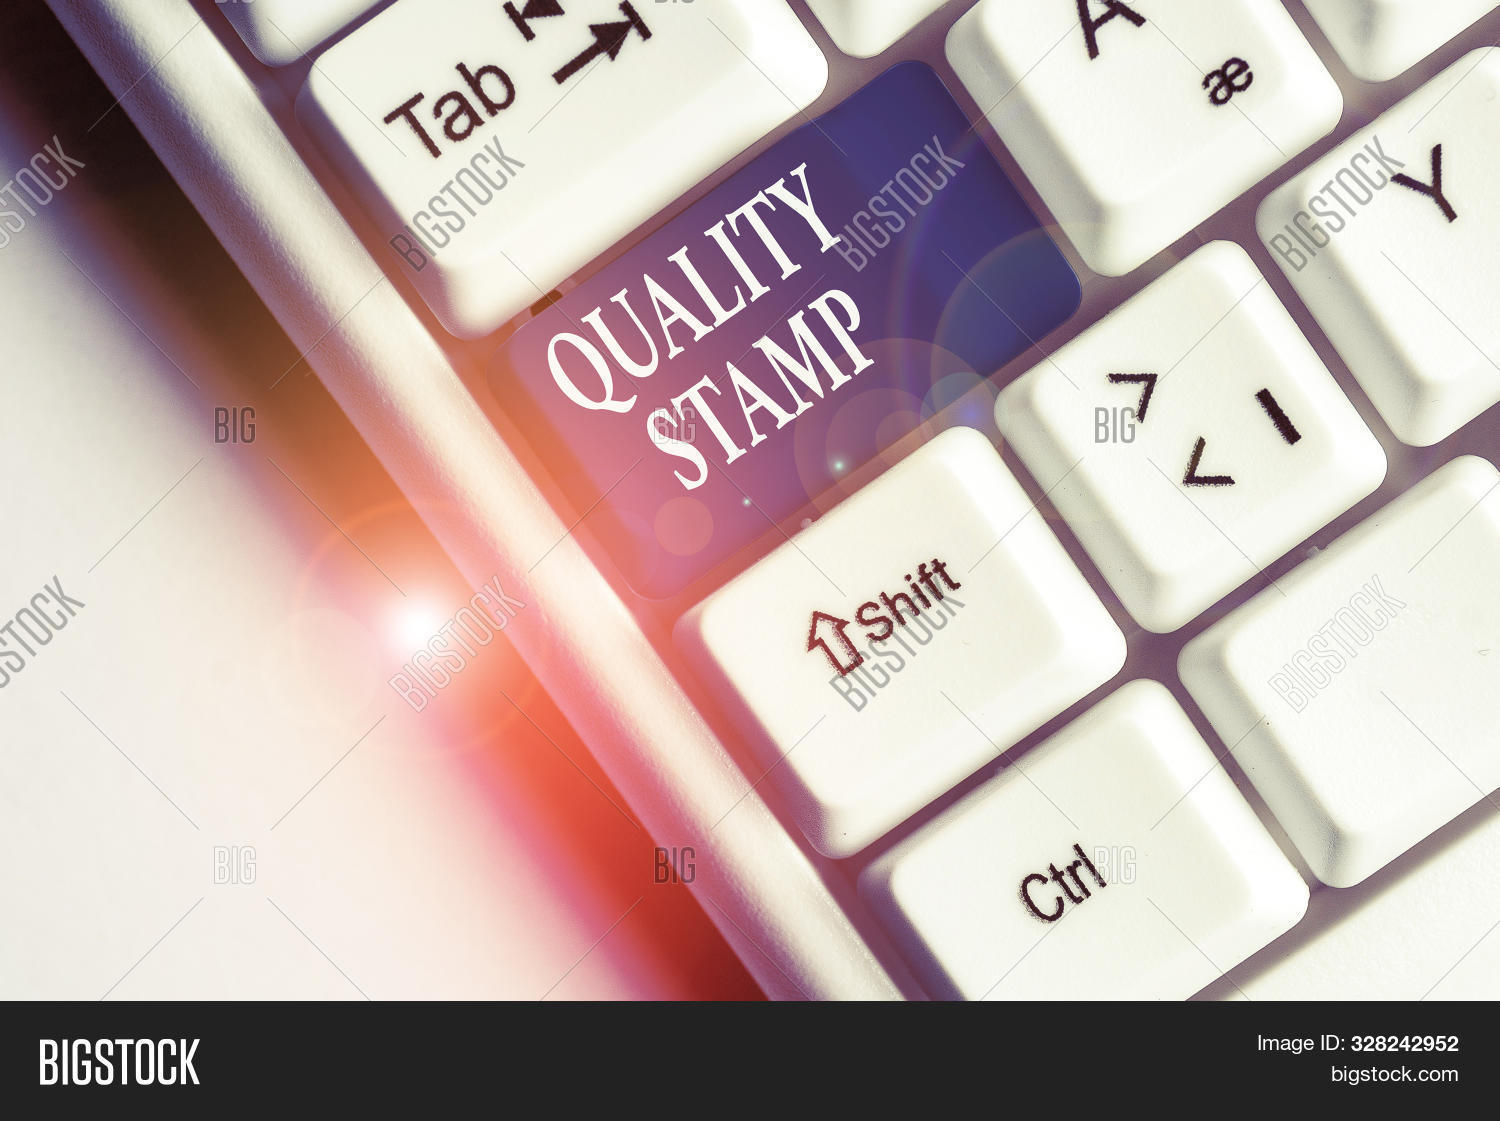 Text sign showing Quality Stamp. Conceptual photo Seal of Approval Good Impression Qualified Passed Inspection White pc keyboard with empty note paper above white background key copy space.